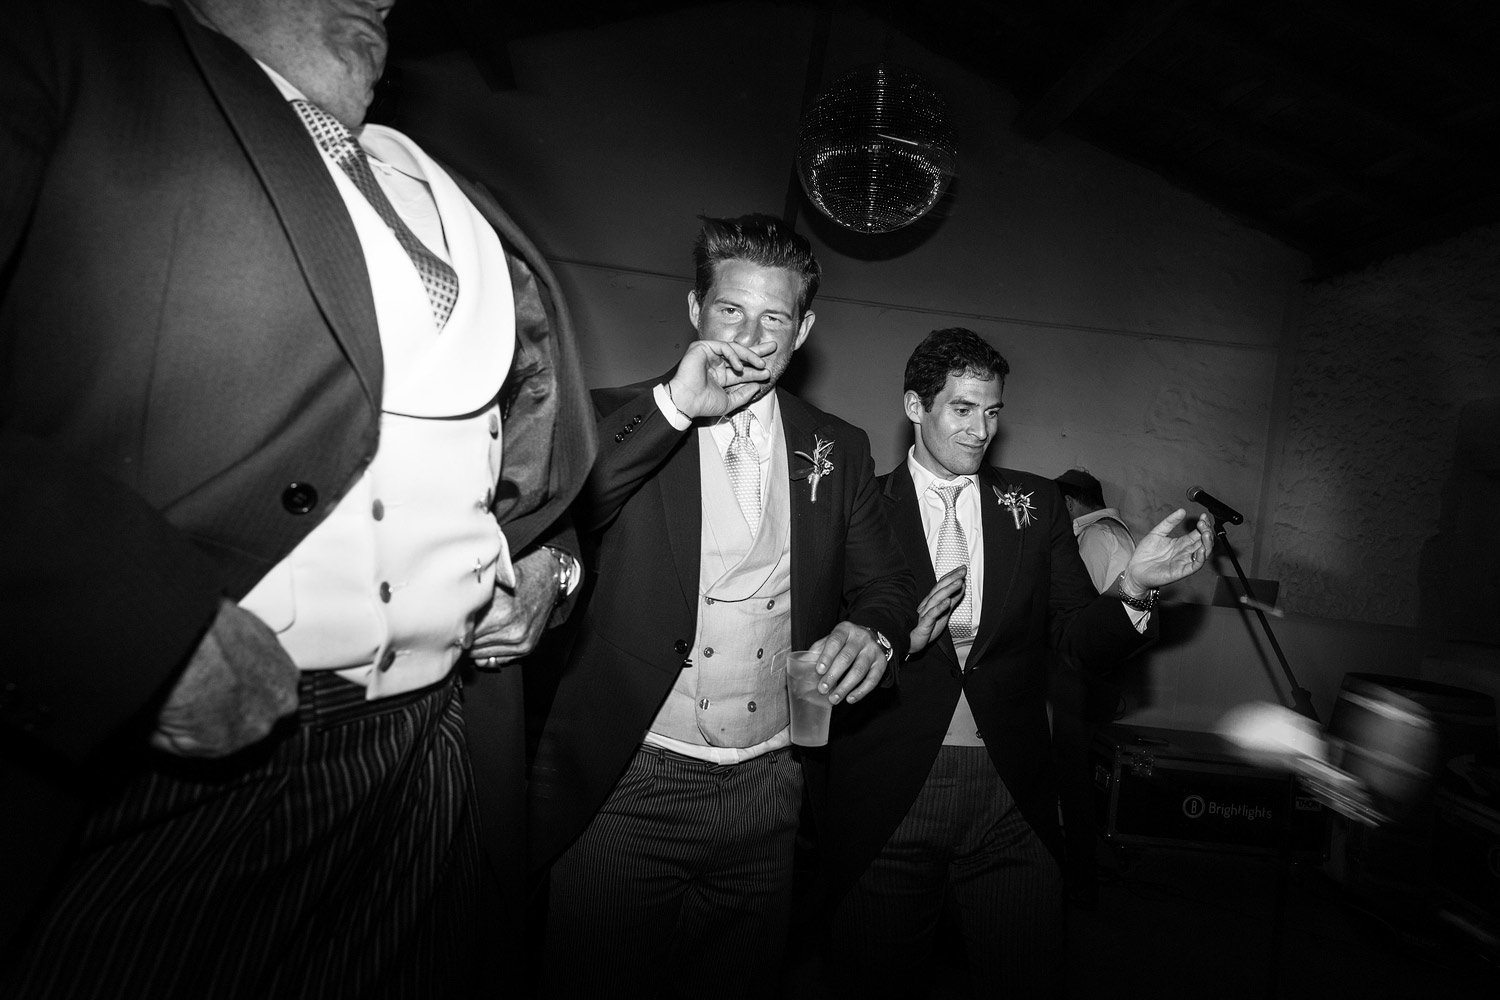 Wedding guests on the dancefloor at Chateau Rigaud in Bordeaux. French wedding photographer